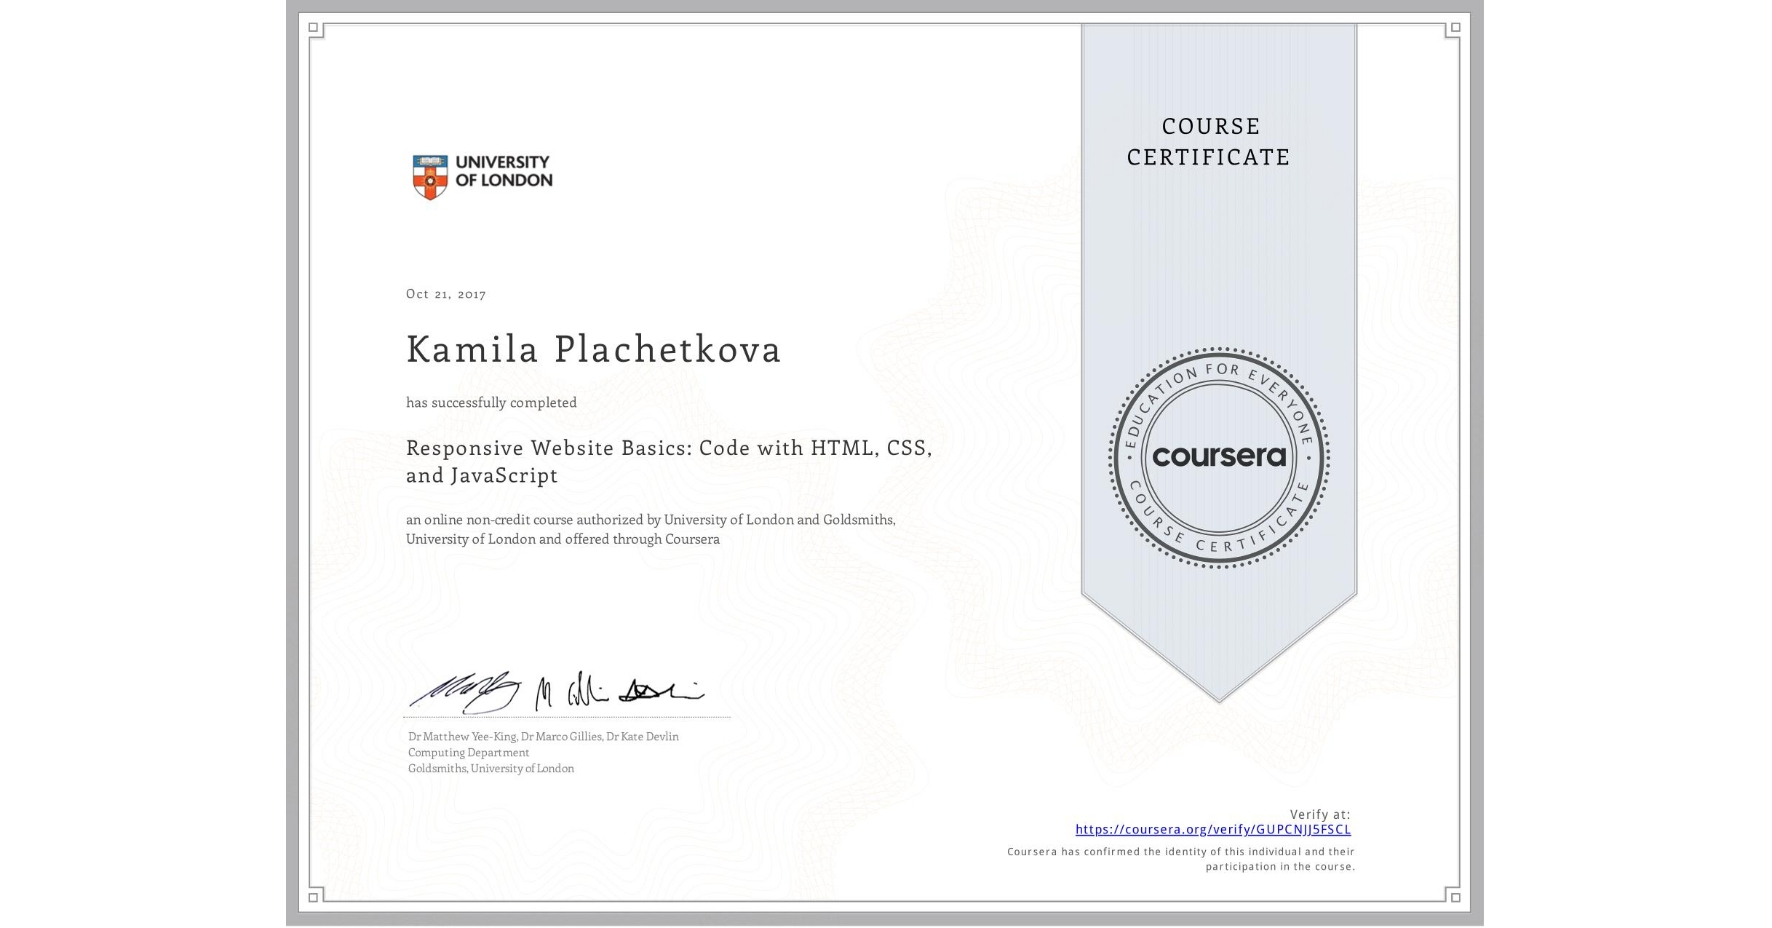 View certificate for Kamila Plachetkova, Responsive Website Basics: Code with HTML, CSS, and JavaScript , an online non-credit course authorized by University of London & Goldsmiths, University of London and offered through Coursera